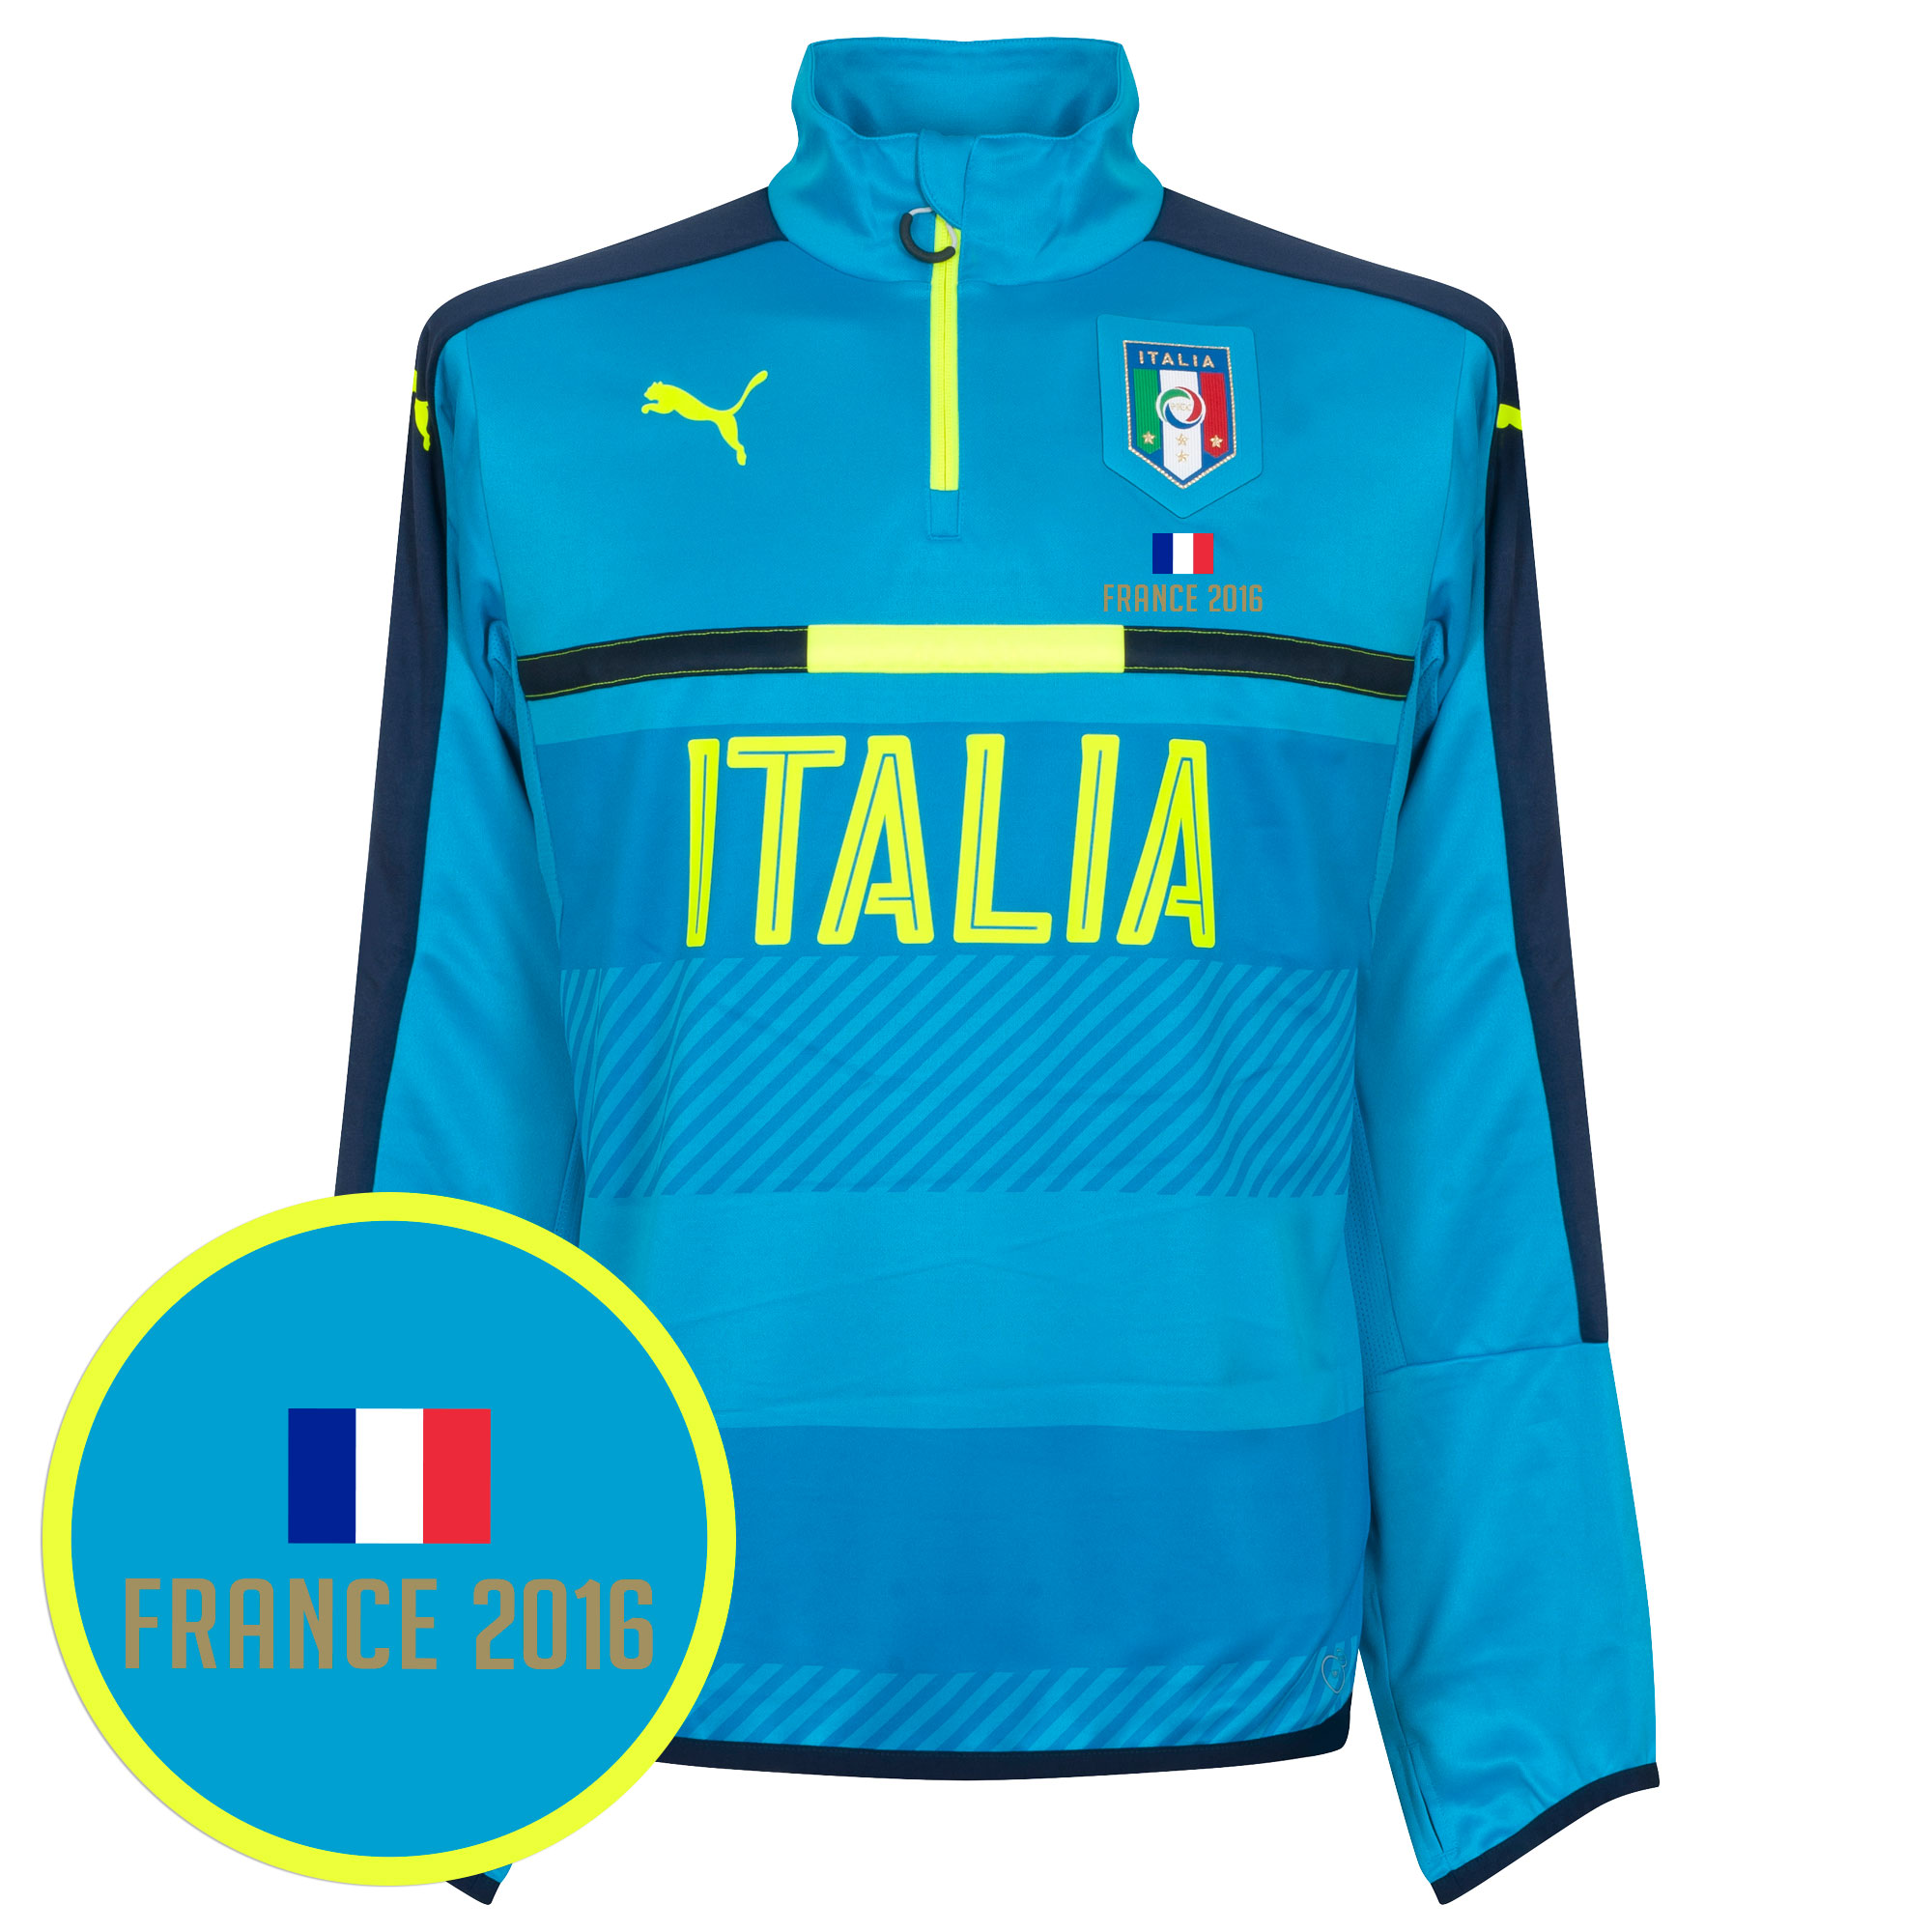 Italy 1/4 Zip Training Top - Sky + FREE France 2016 Transfer - L